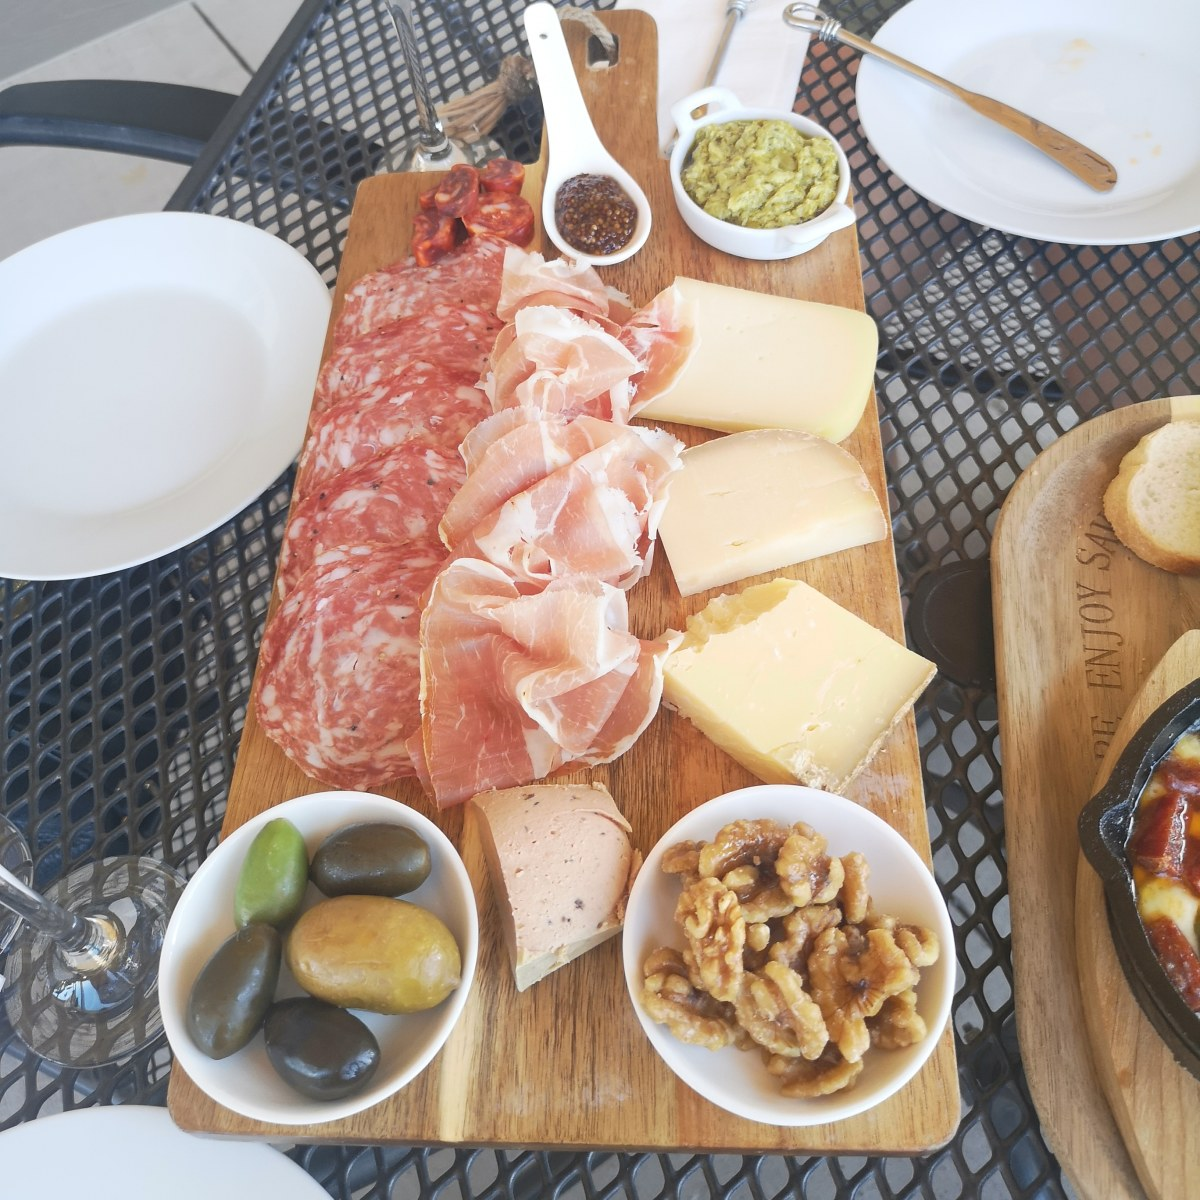 Cheese and charcuterie, anyone?